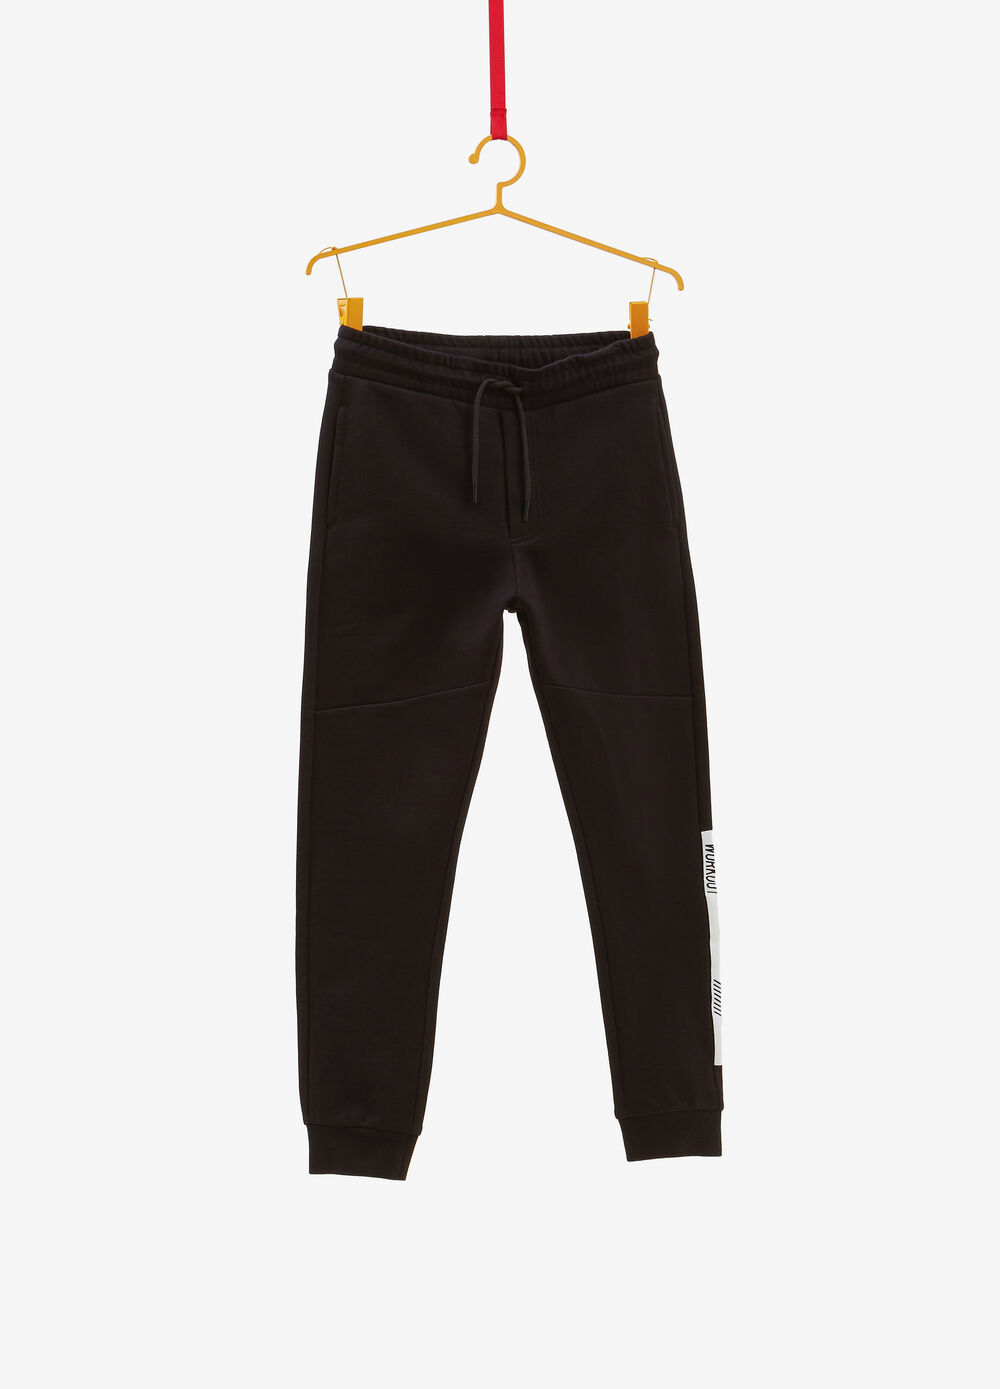 Cotton blend trousers with elastic waist band